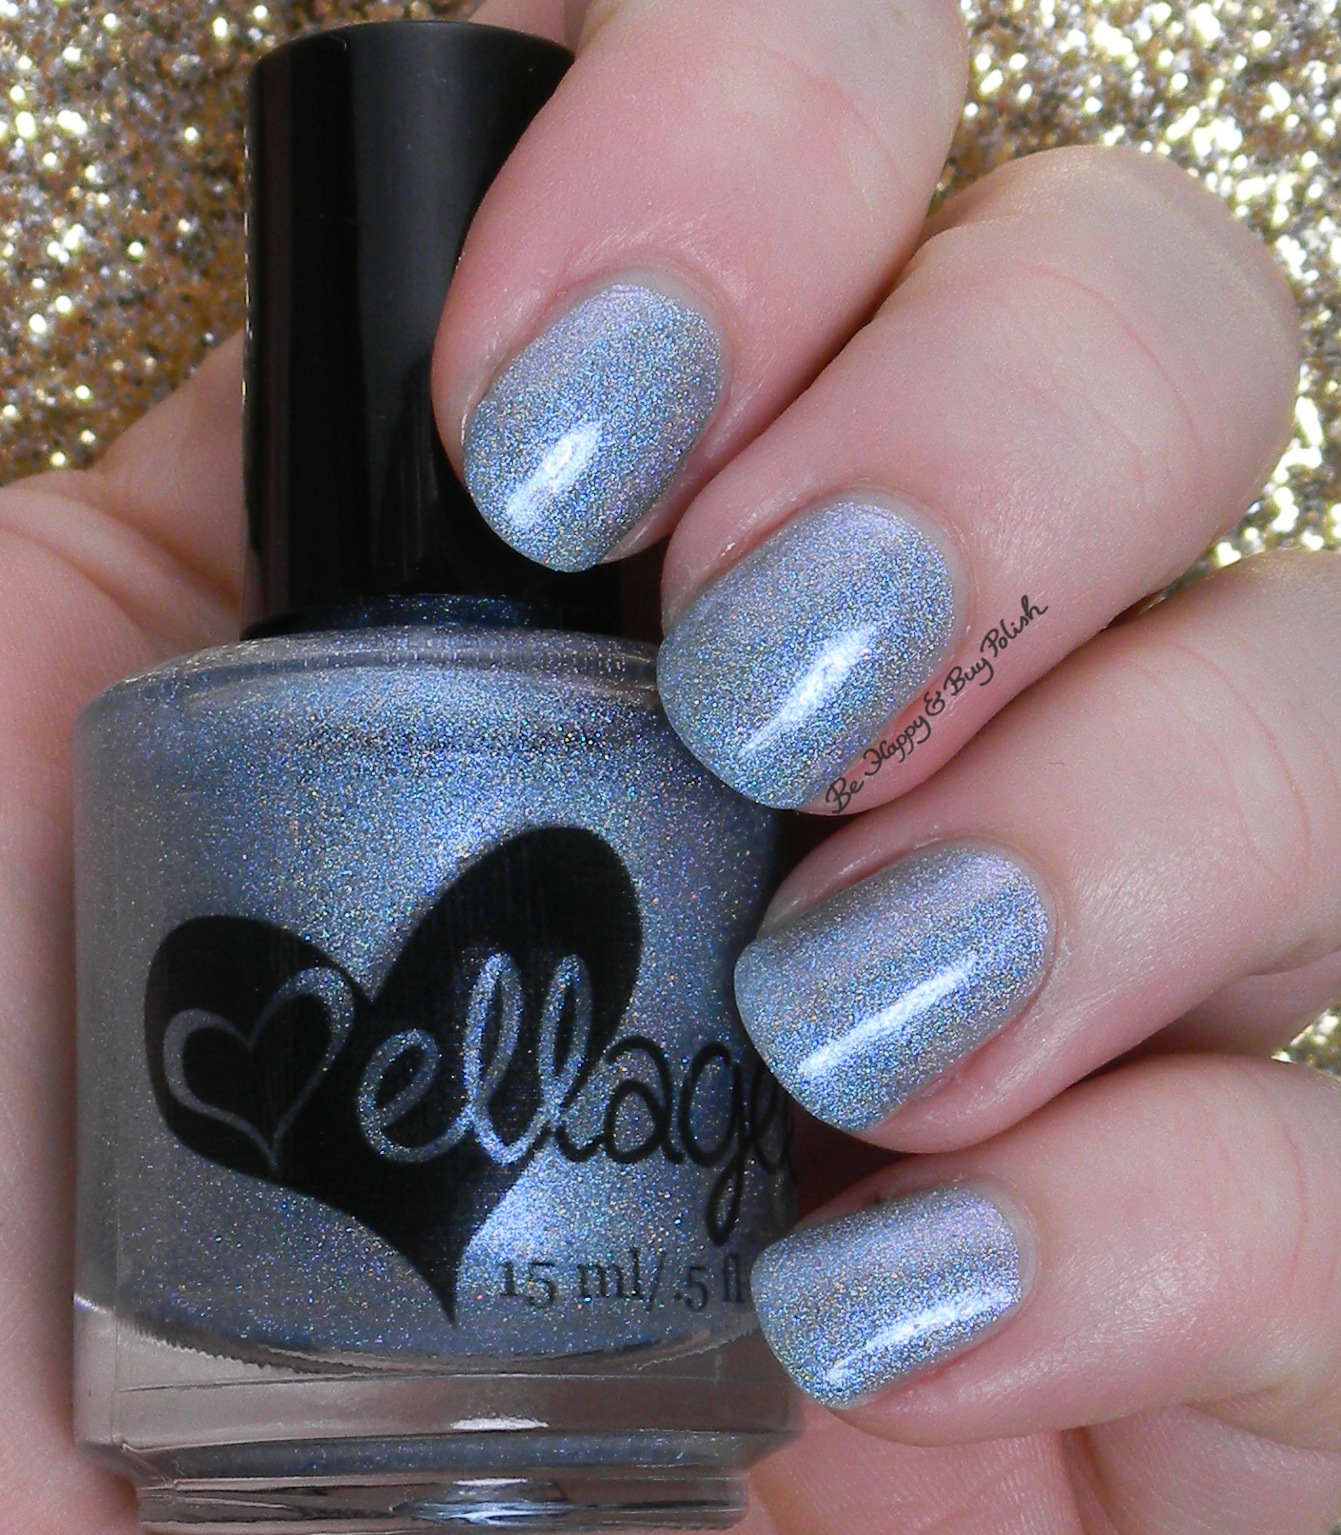 12 Days of Christmas Nail Art: Ice Blue and White + Ellagee ELL-sa ...